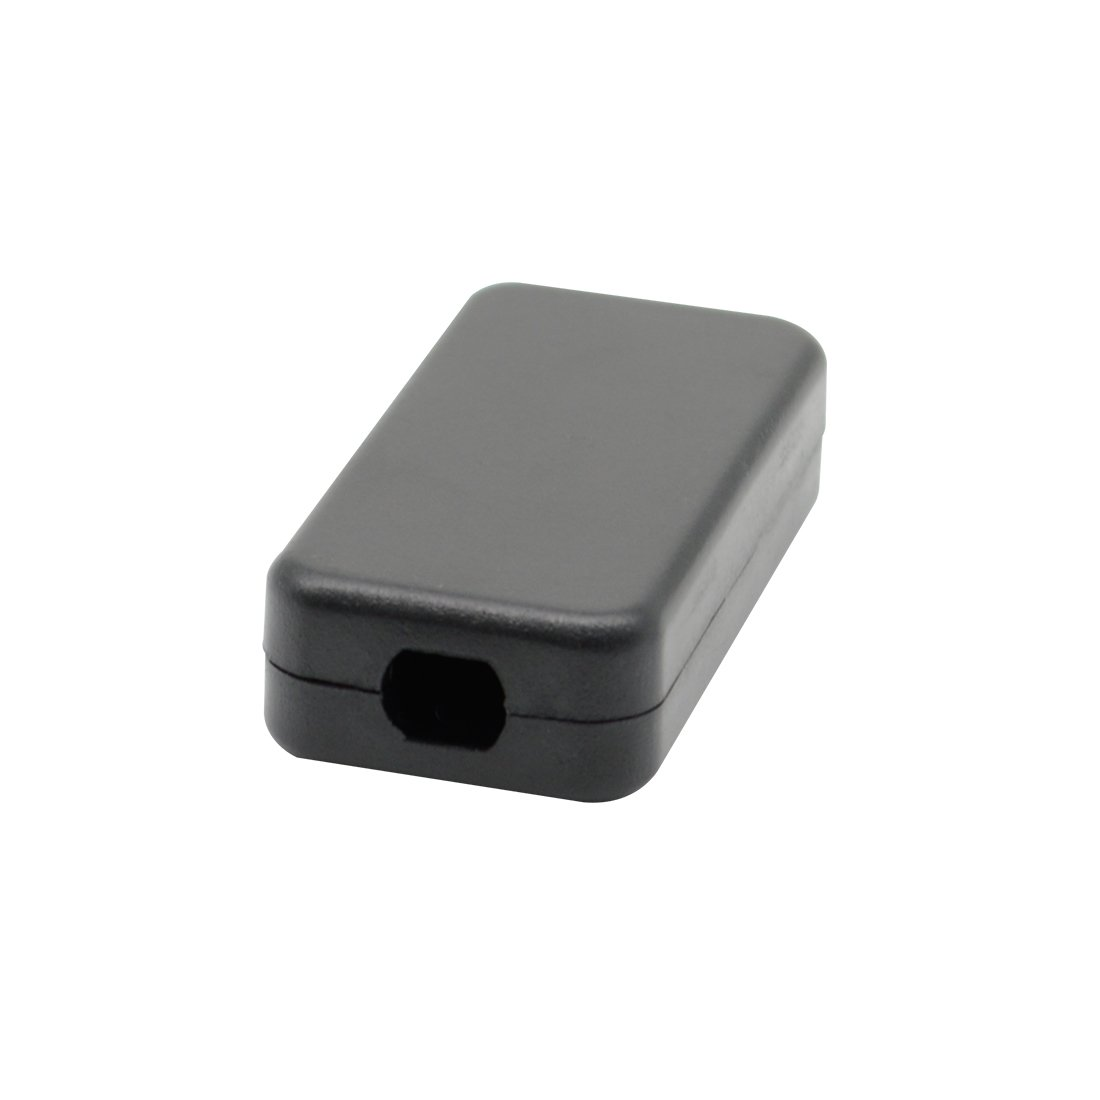 Project Box Black 1.97 x 1.10 x 0.59 LeMotech 5Pcs ABS Plastic Electrical Project Case Power Junction Box 50 x 28 x 15mm